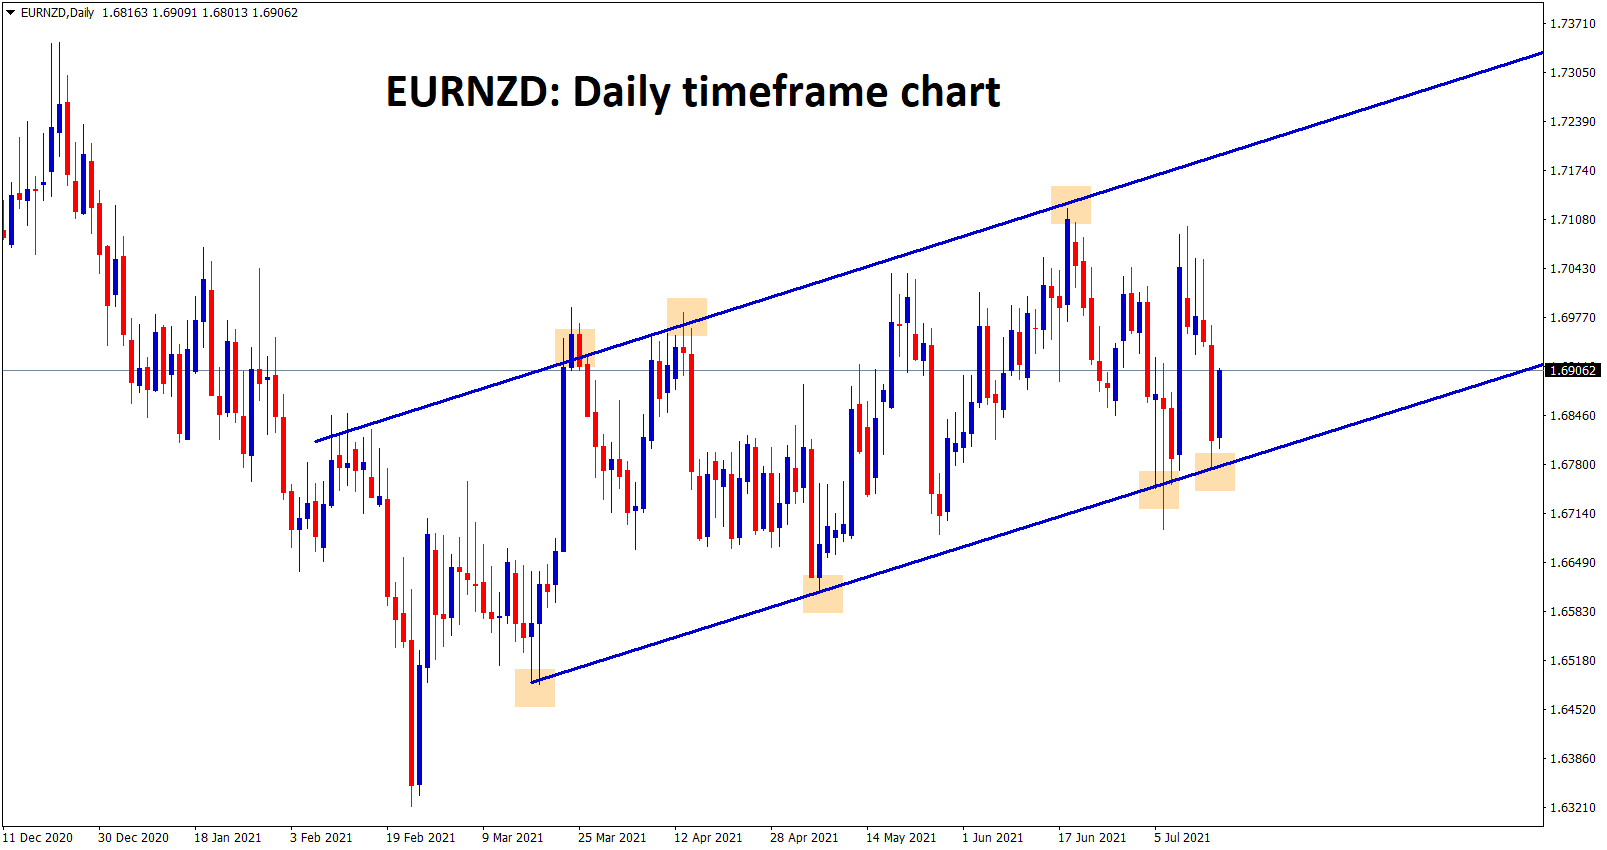 EURNZD bounces back from the higher low level of an Ascending channel